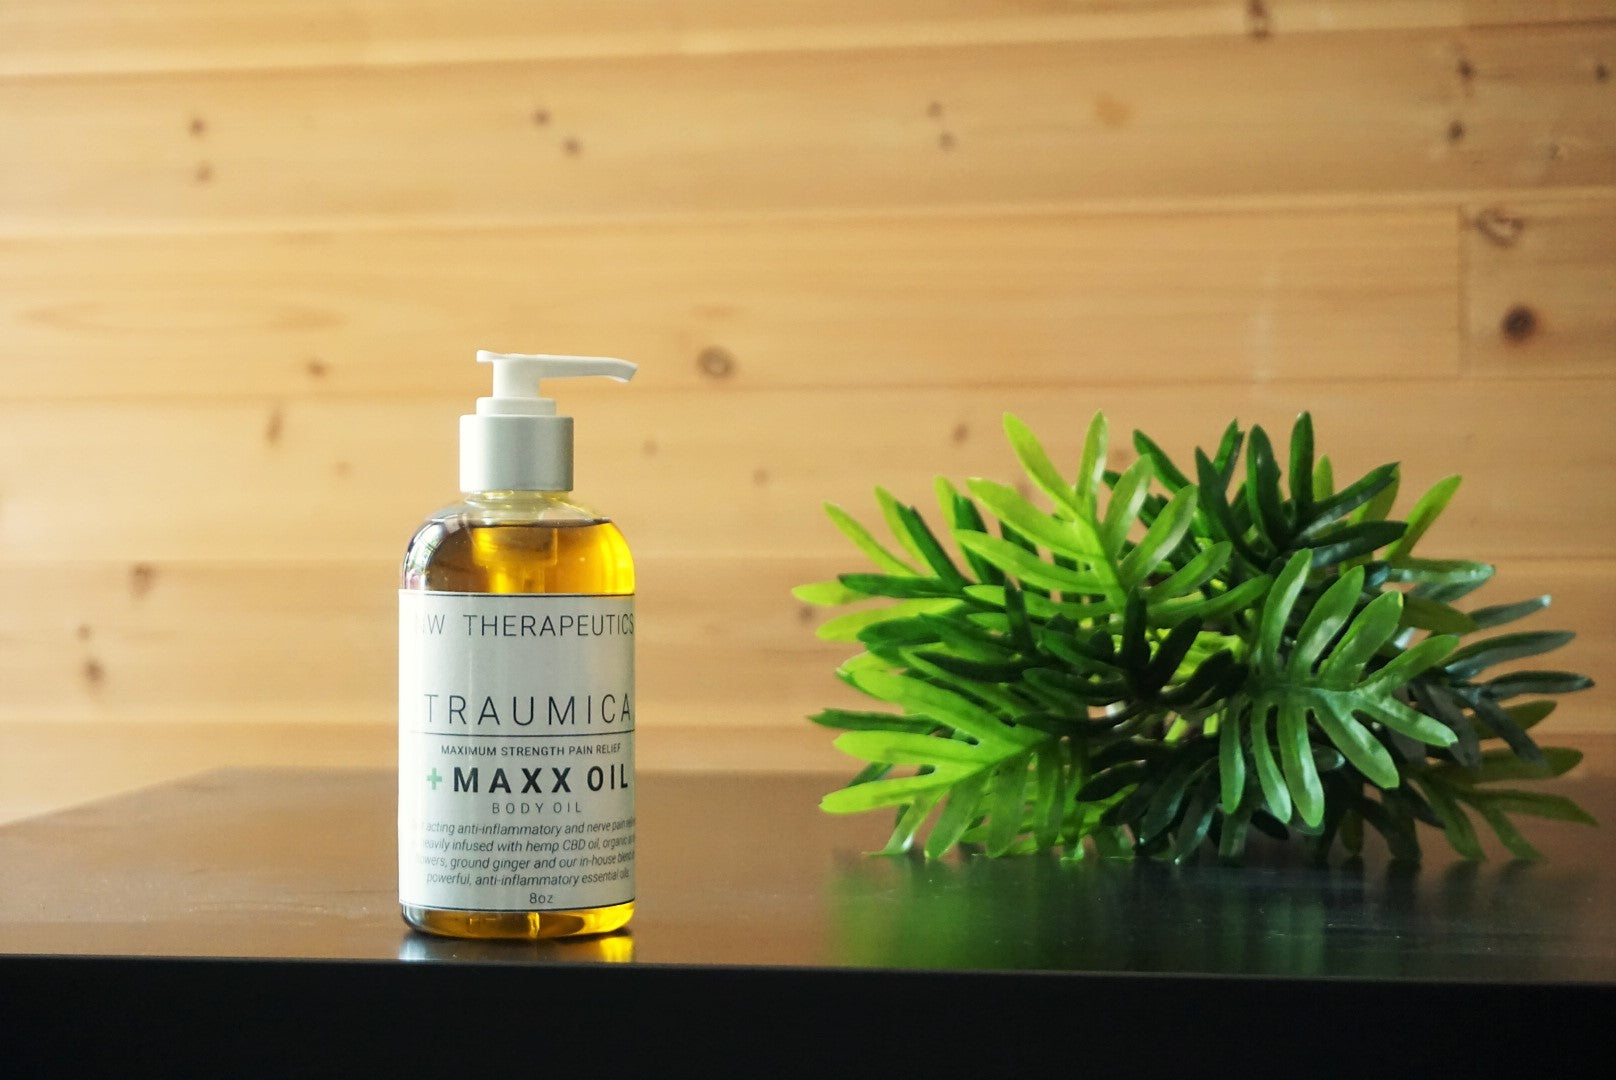 Traumica Maxx Oil